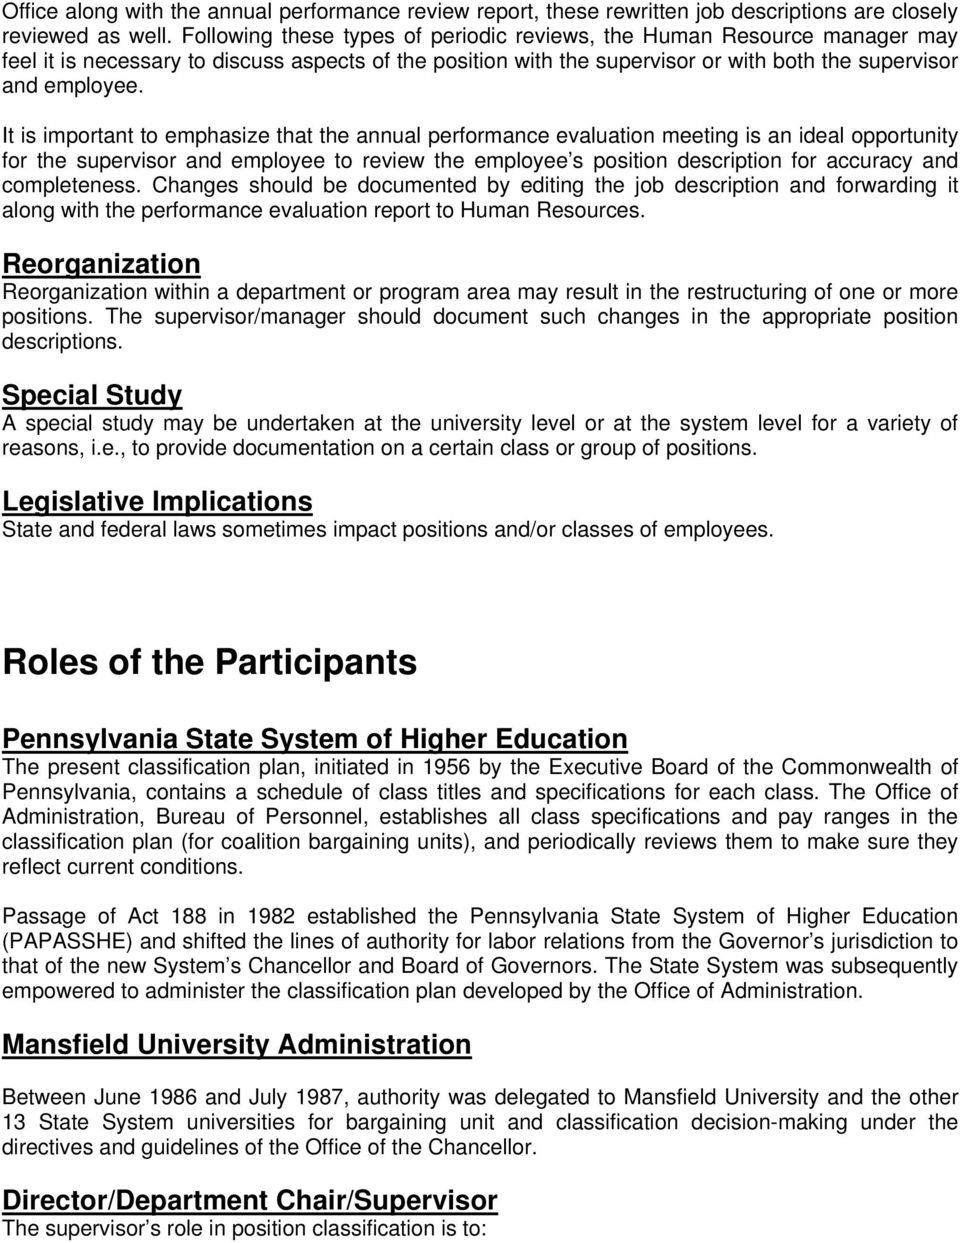 Overview of Position Classification Process - PDF